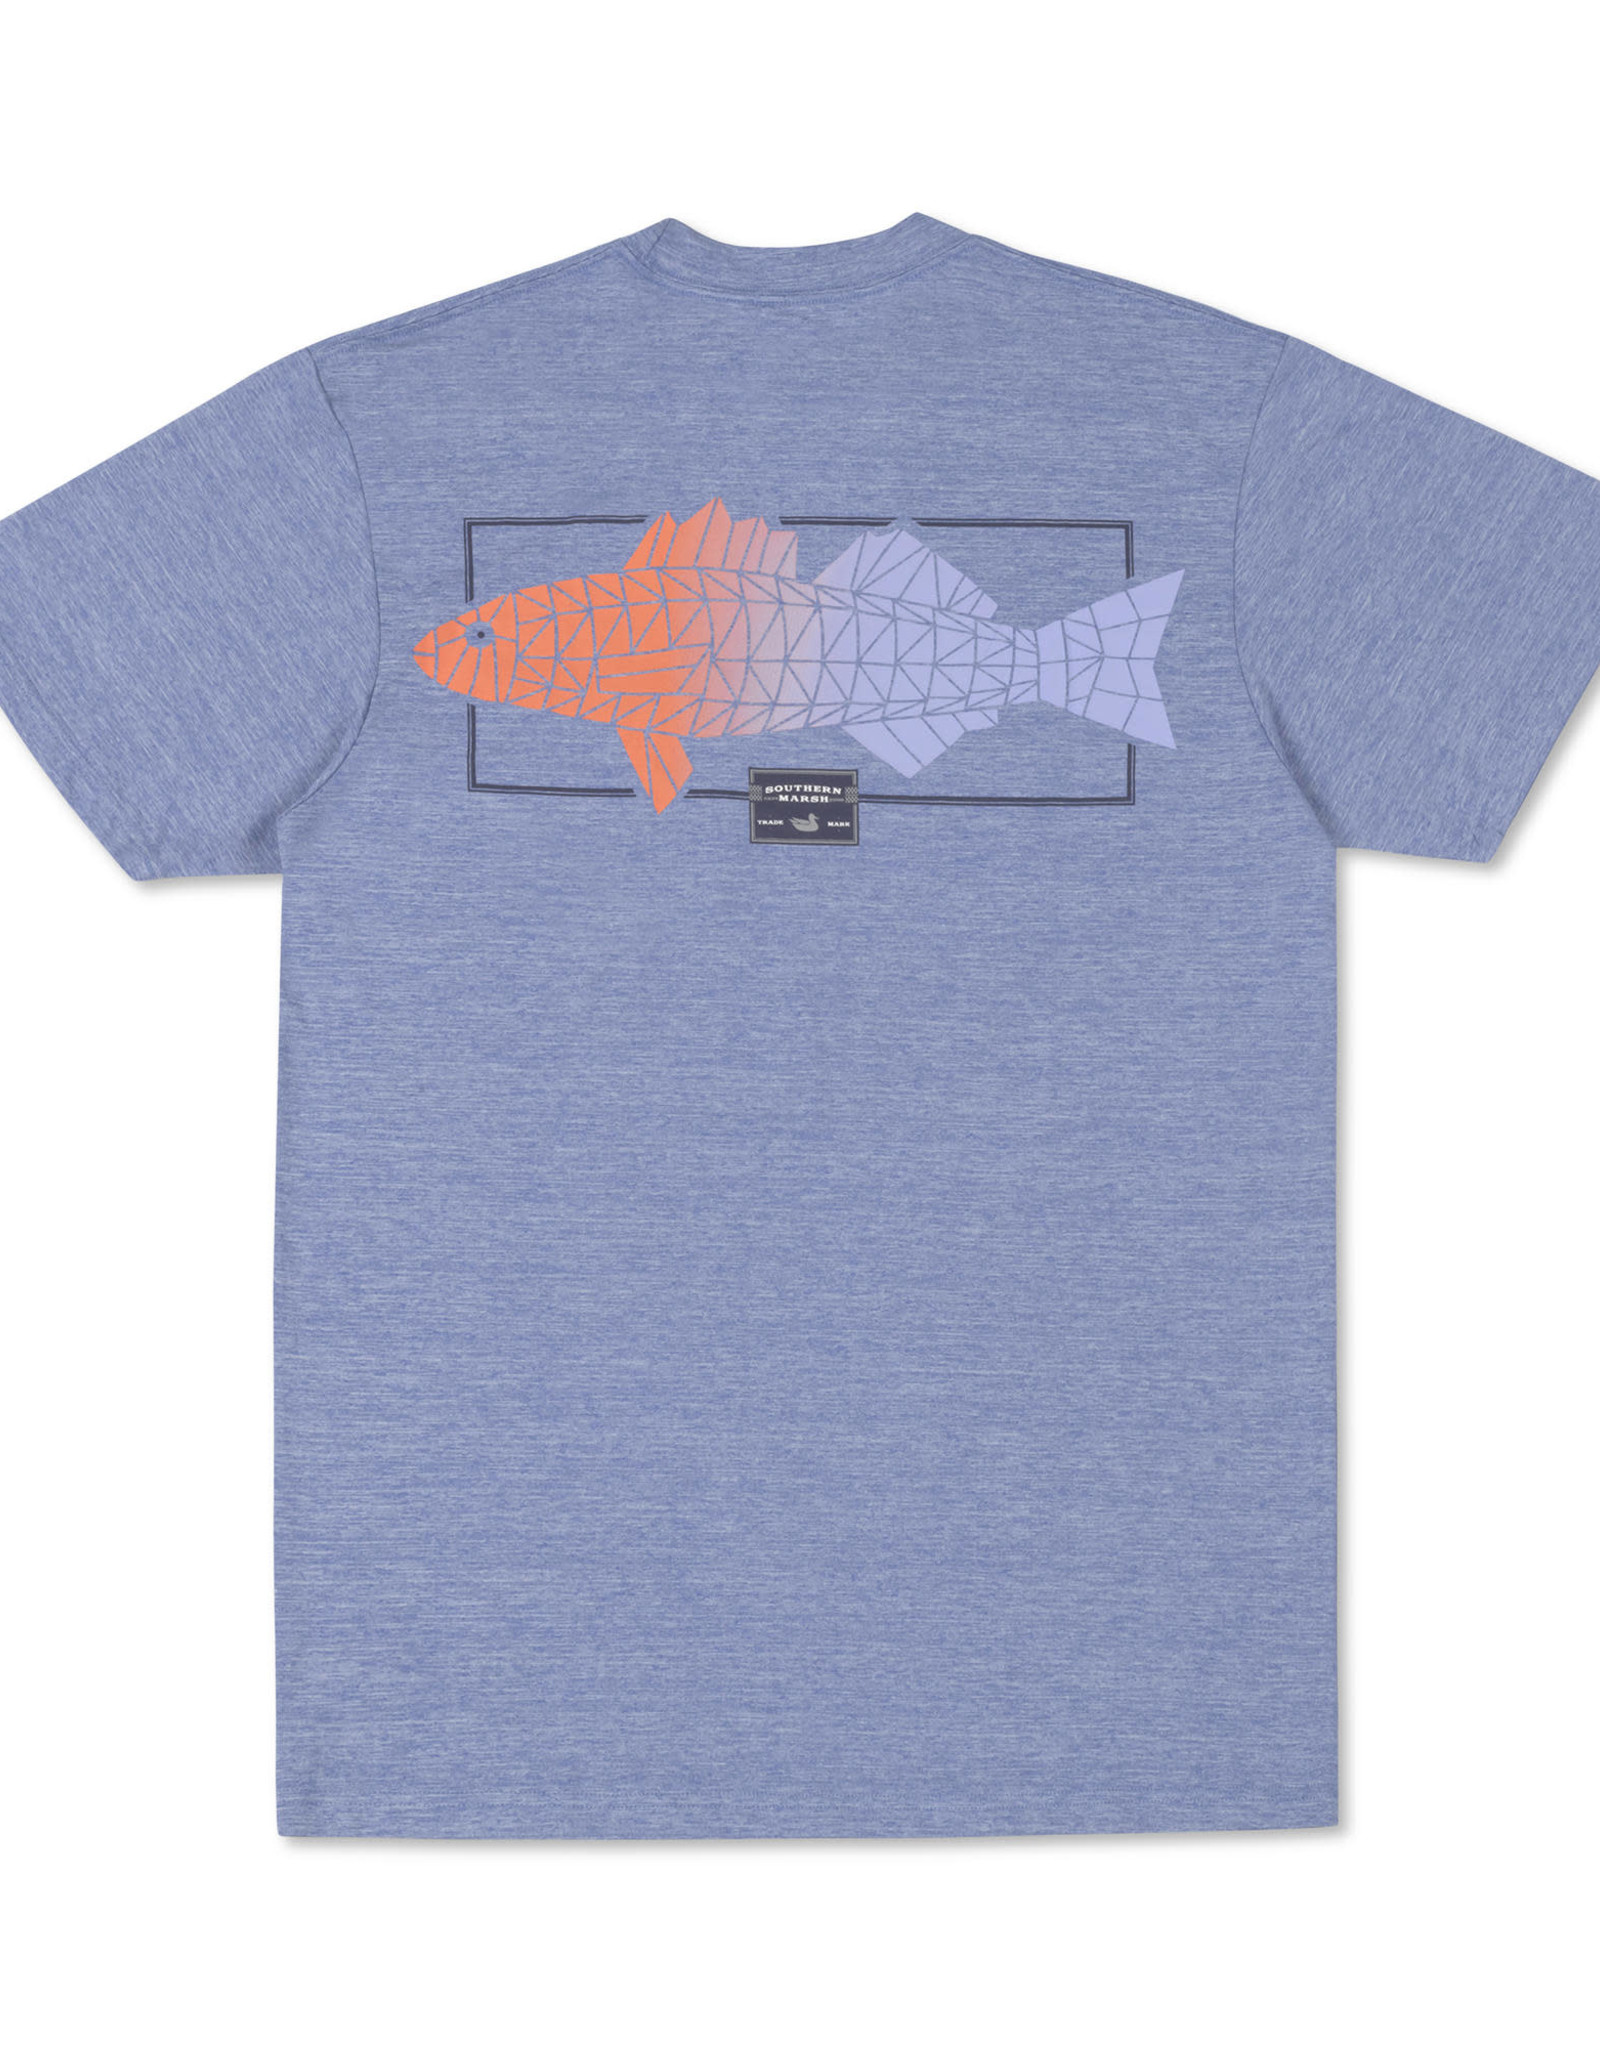 Southern Marsh GGFG -Fieldtec Heathered SS Tee - Gradient Scales